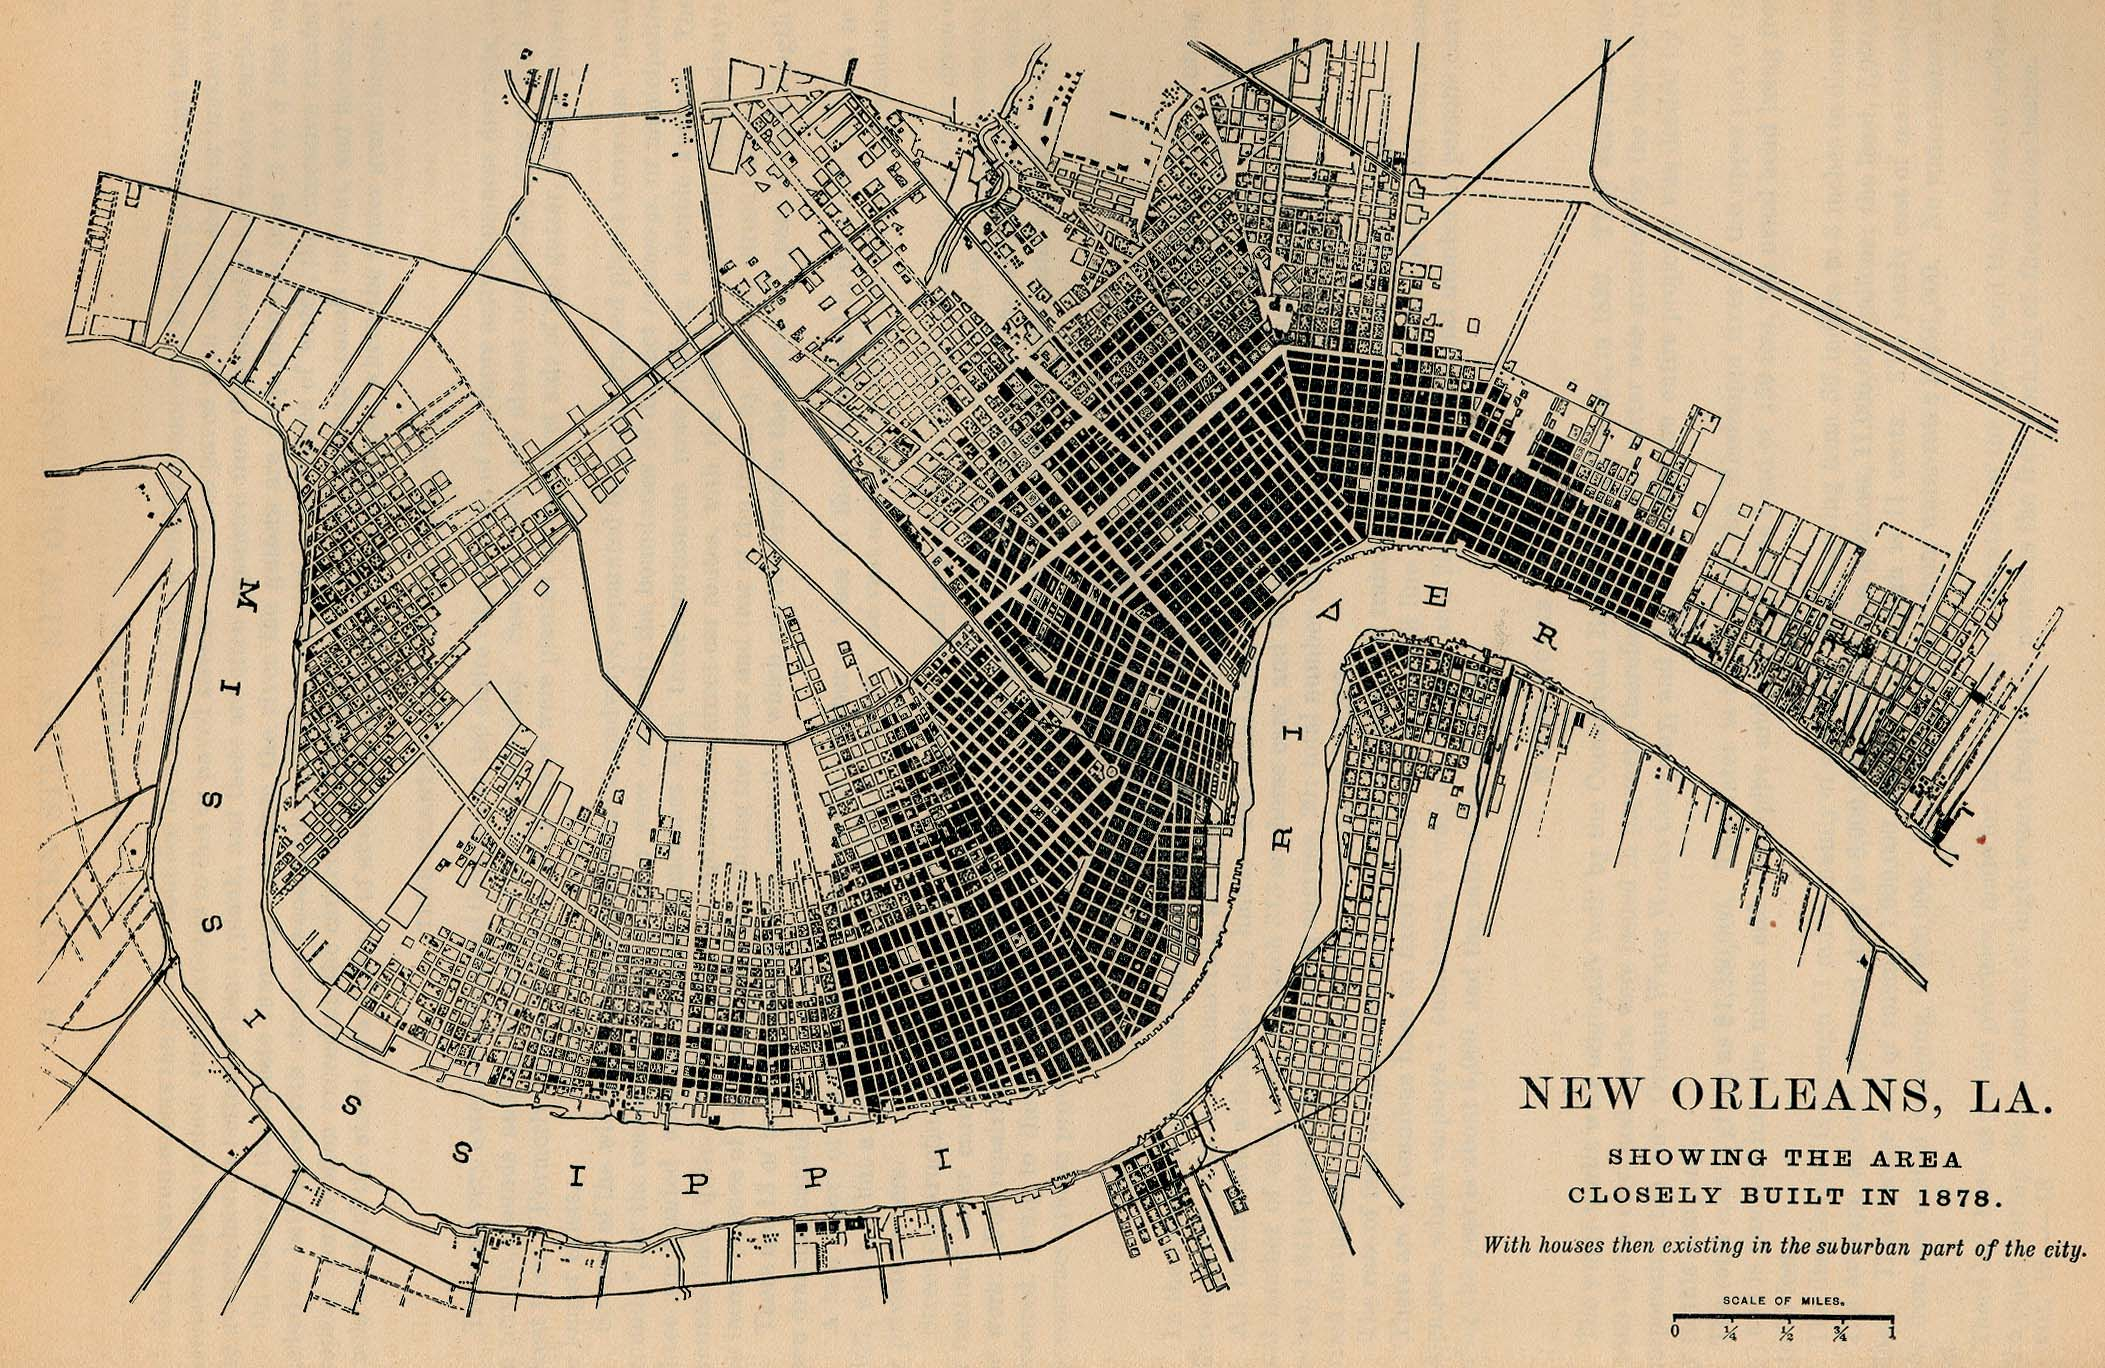 New orleans tourist attractions map. Maps Of New Orleans City Map Louisiana United States 1878 Mapa Owje Com